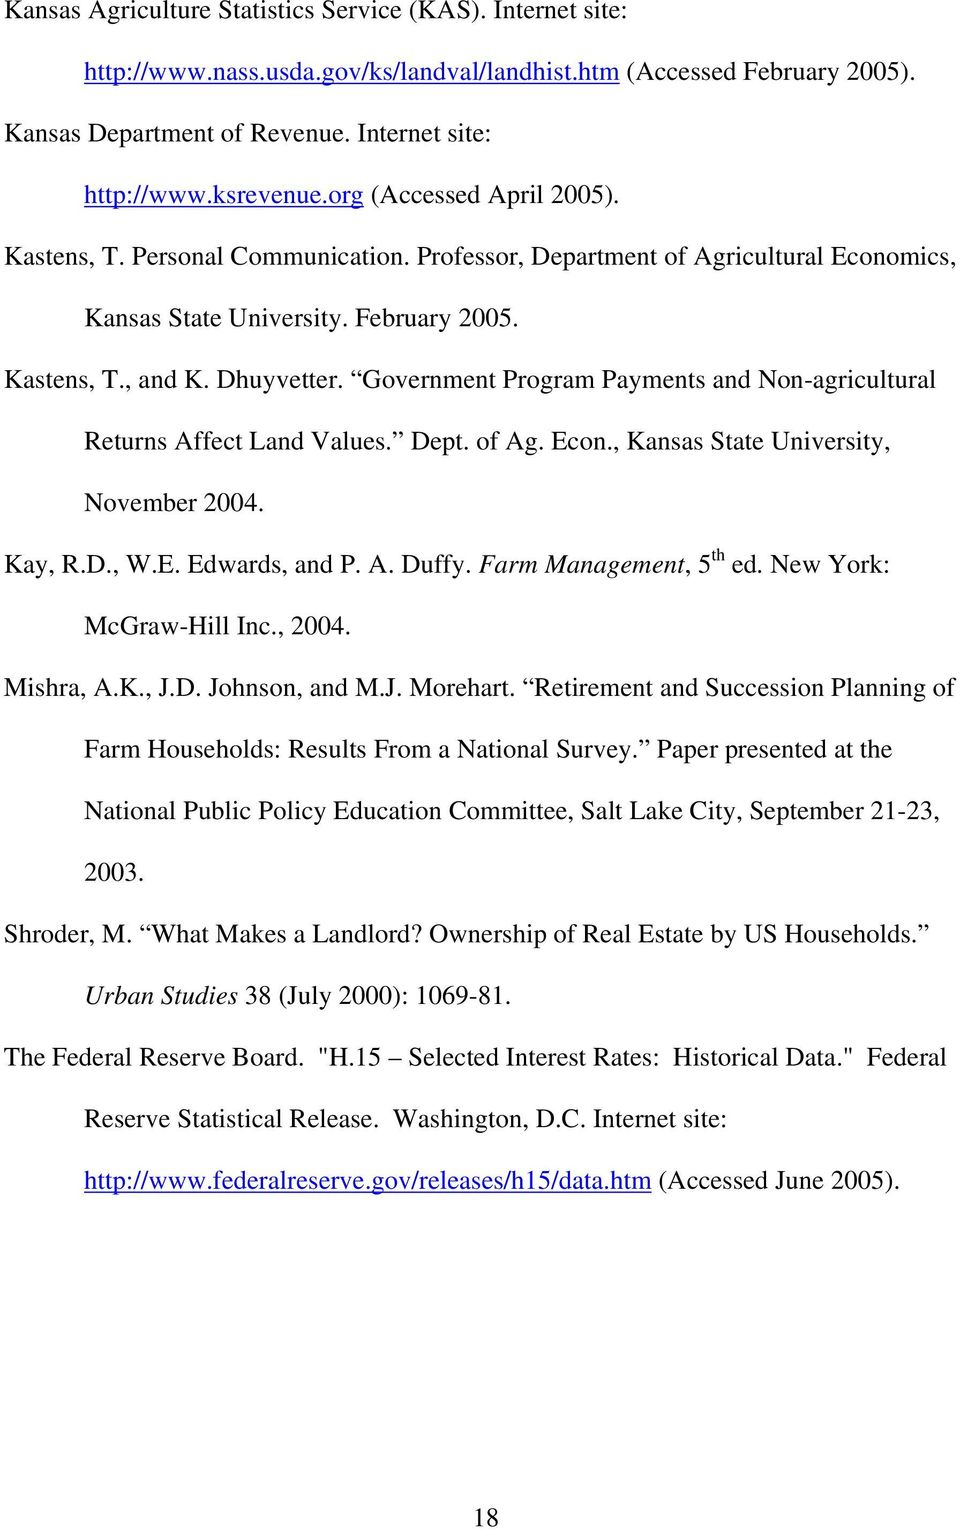 Government Program Payments and Non-agricultural Returns Affect Land Values. Dept. of Ag. Econ., Kansas State University, November 2004. Kay, R.D., W.E. Edwards, and P. A. Duffy.